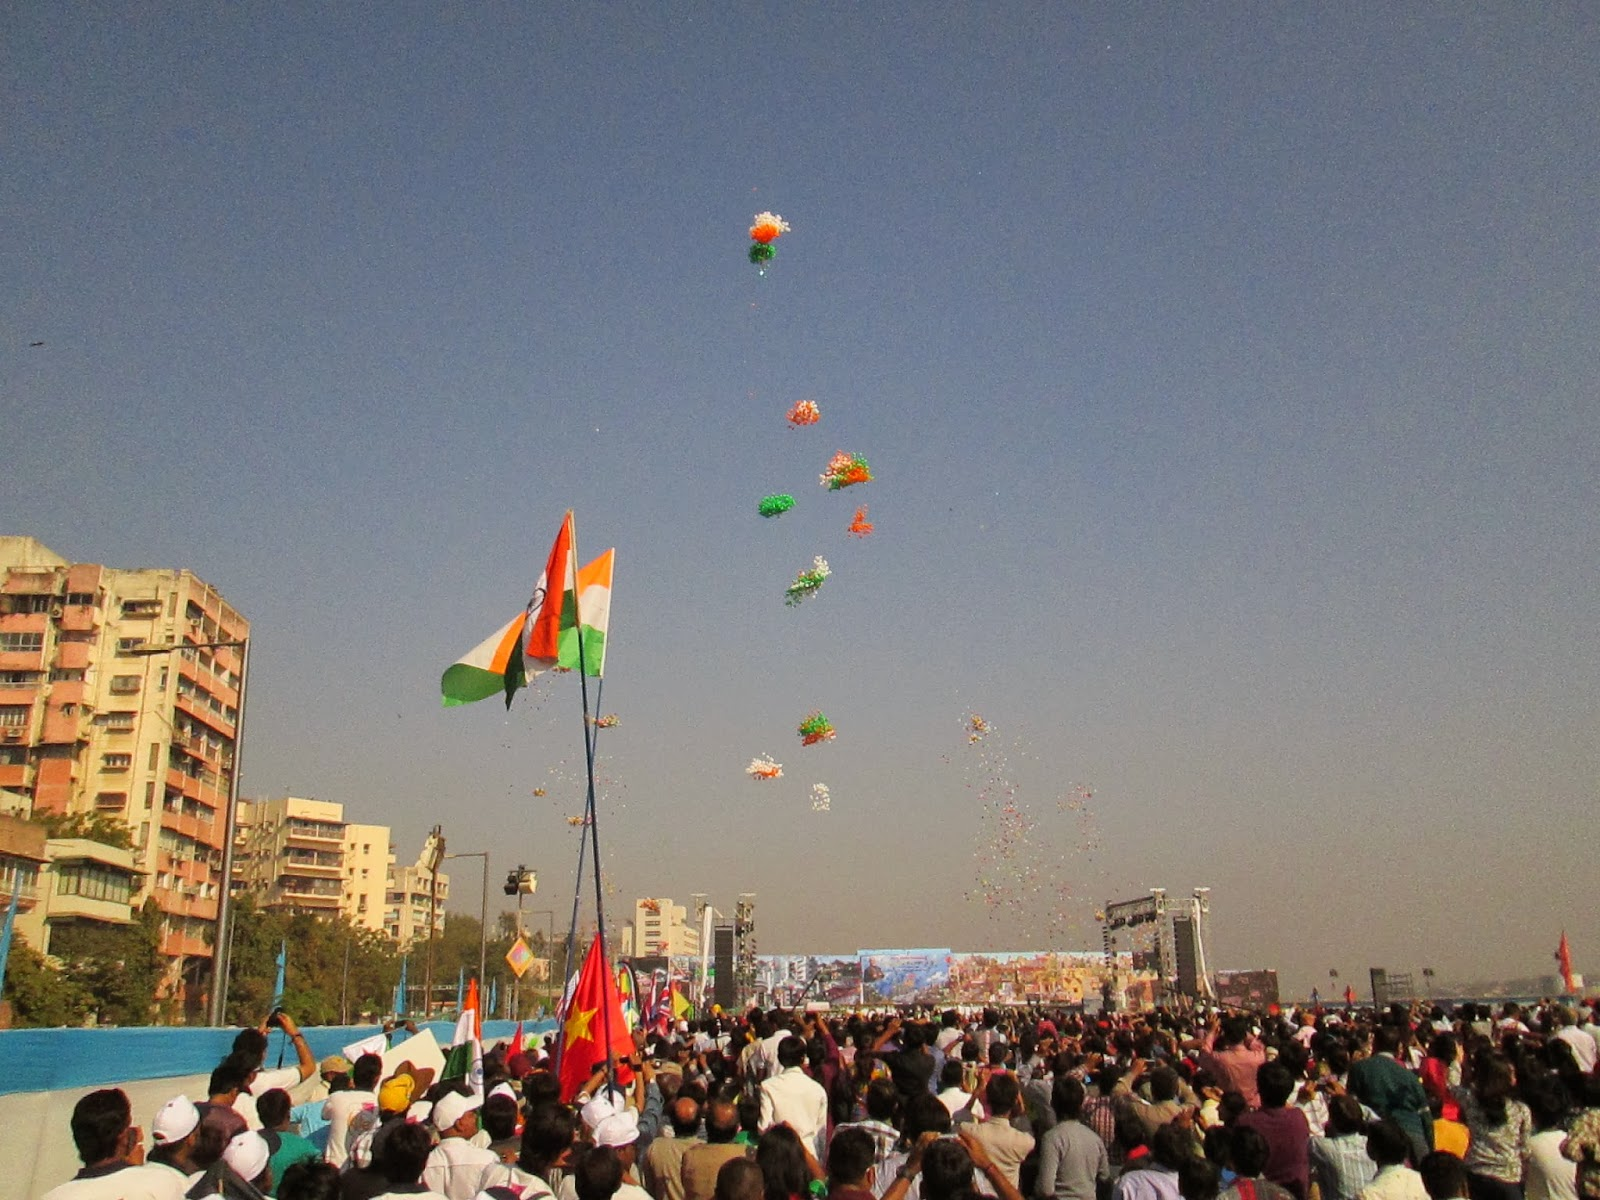 international kite festival 2014 - ahmedabad - gujarat